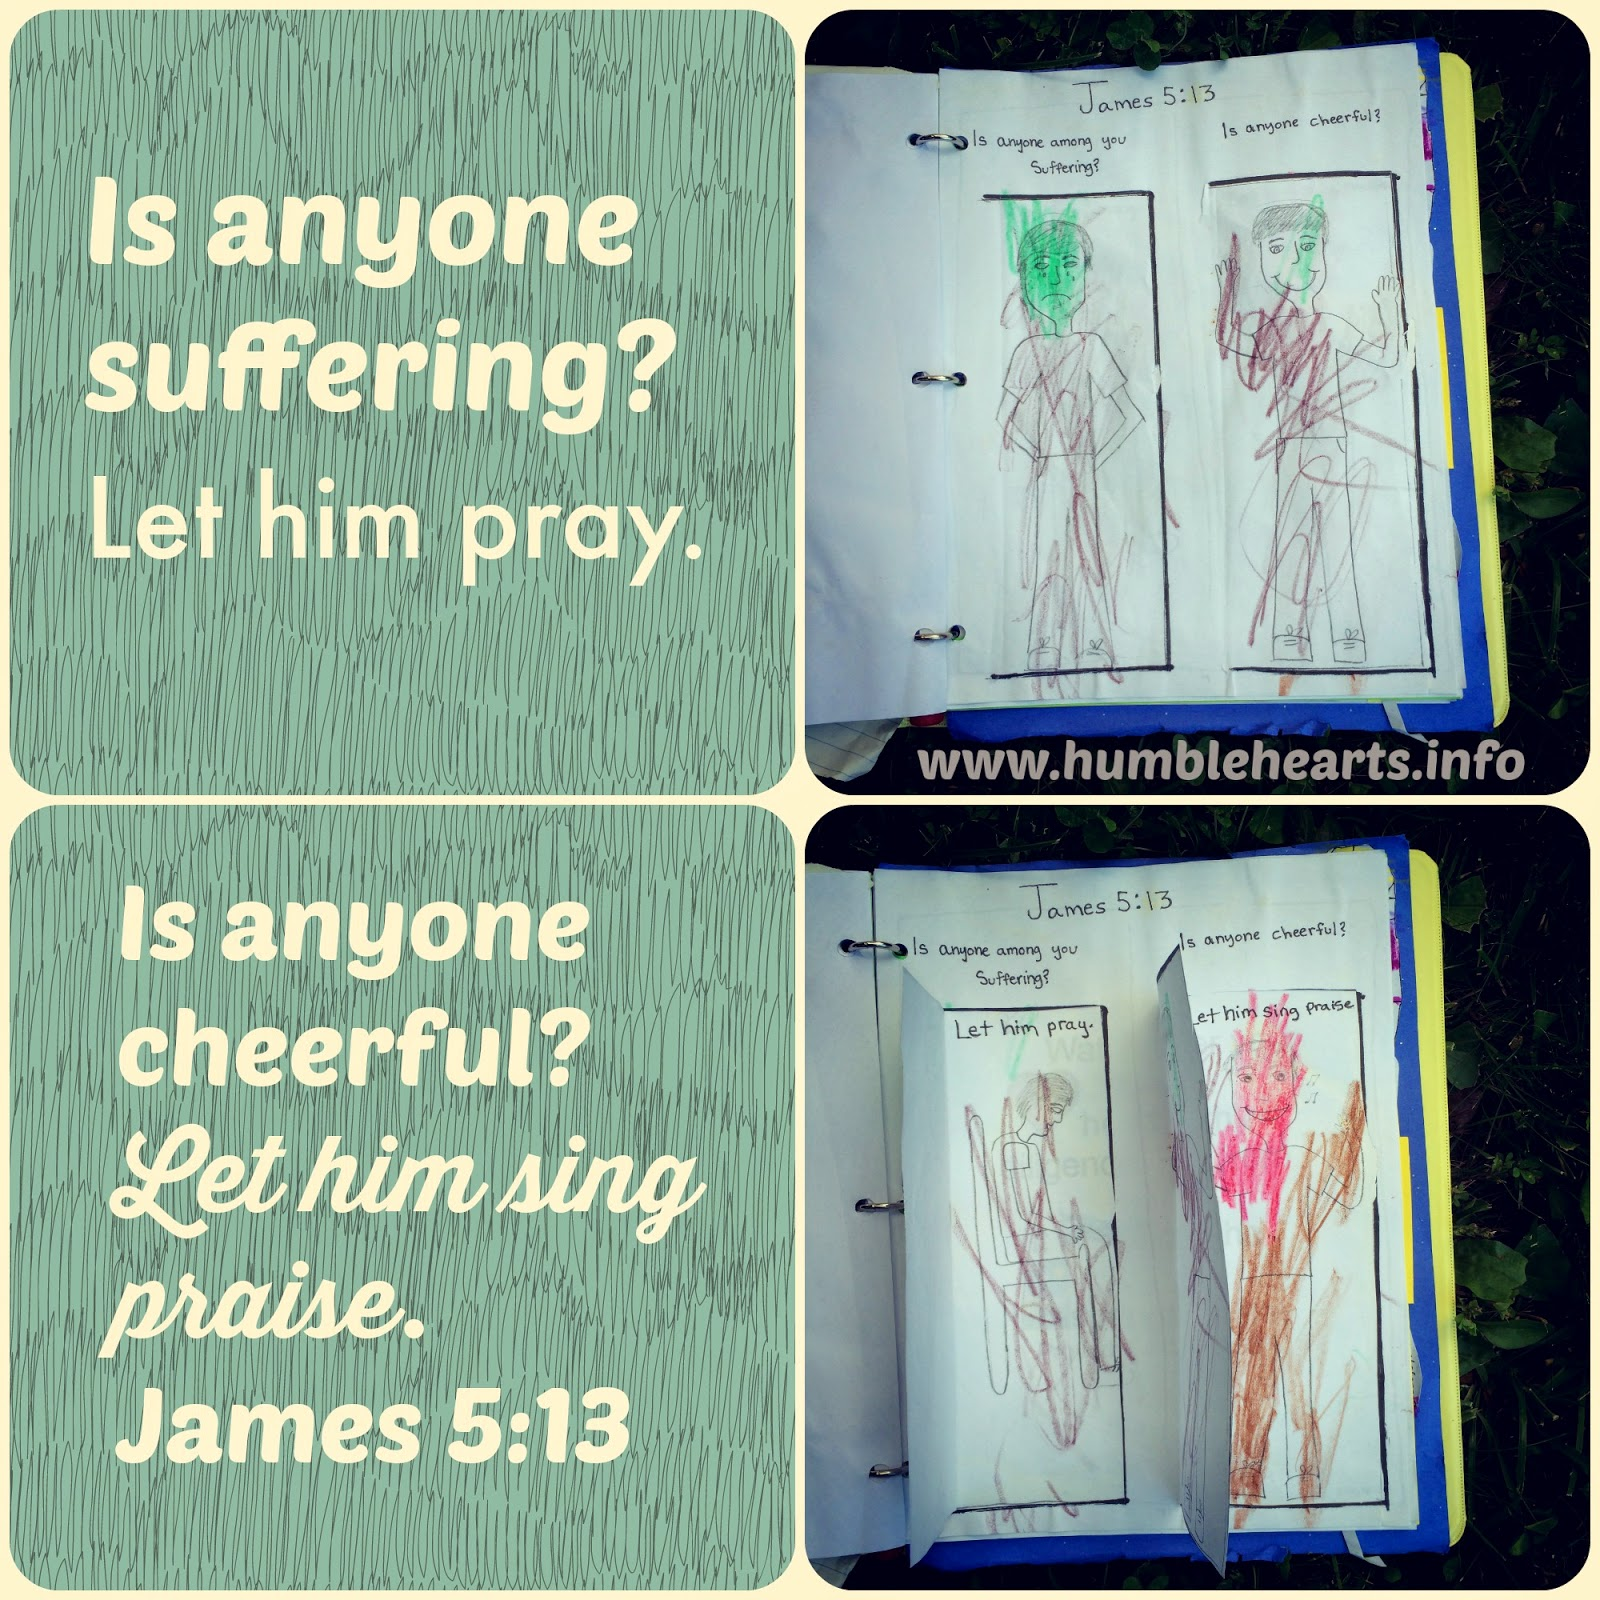 http://www.humblehearts.info/2014/07/pray-and-sing-praises-teaching-ideas.html